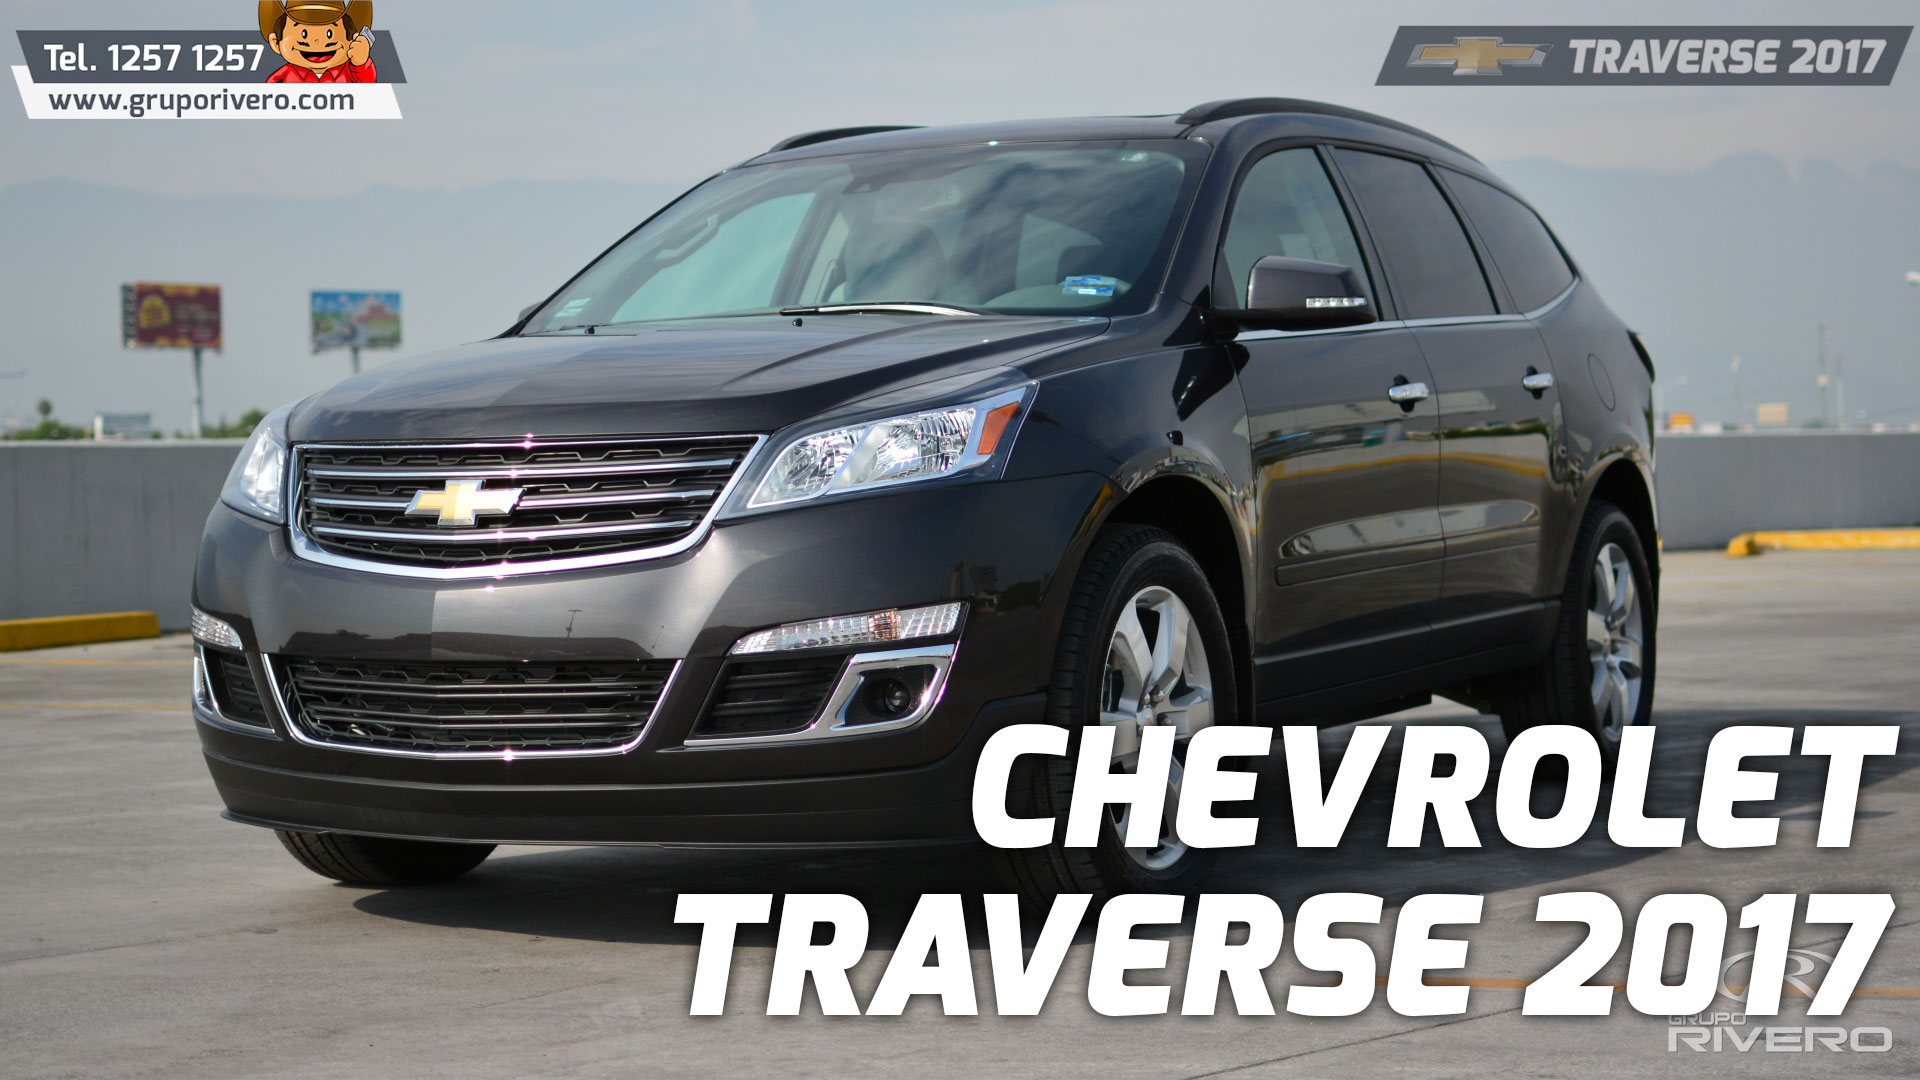 chevrolet traverse 2017 en monterrey motor de 3 6l. Black Bedroom Furniture Sets. Home Design Ideas